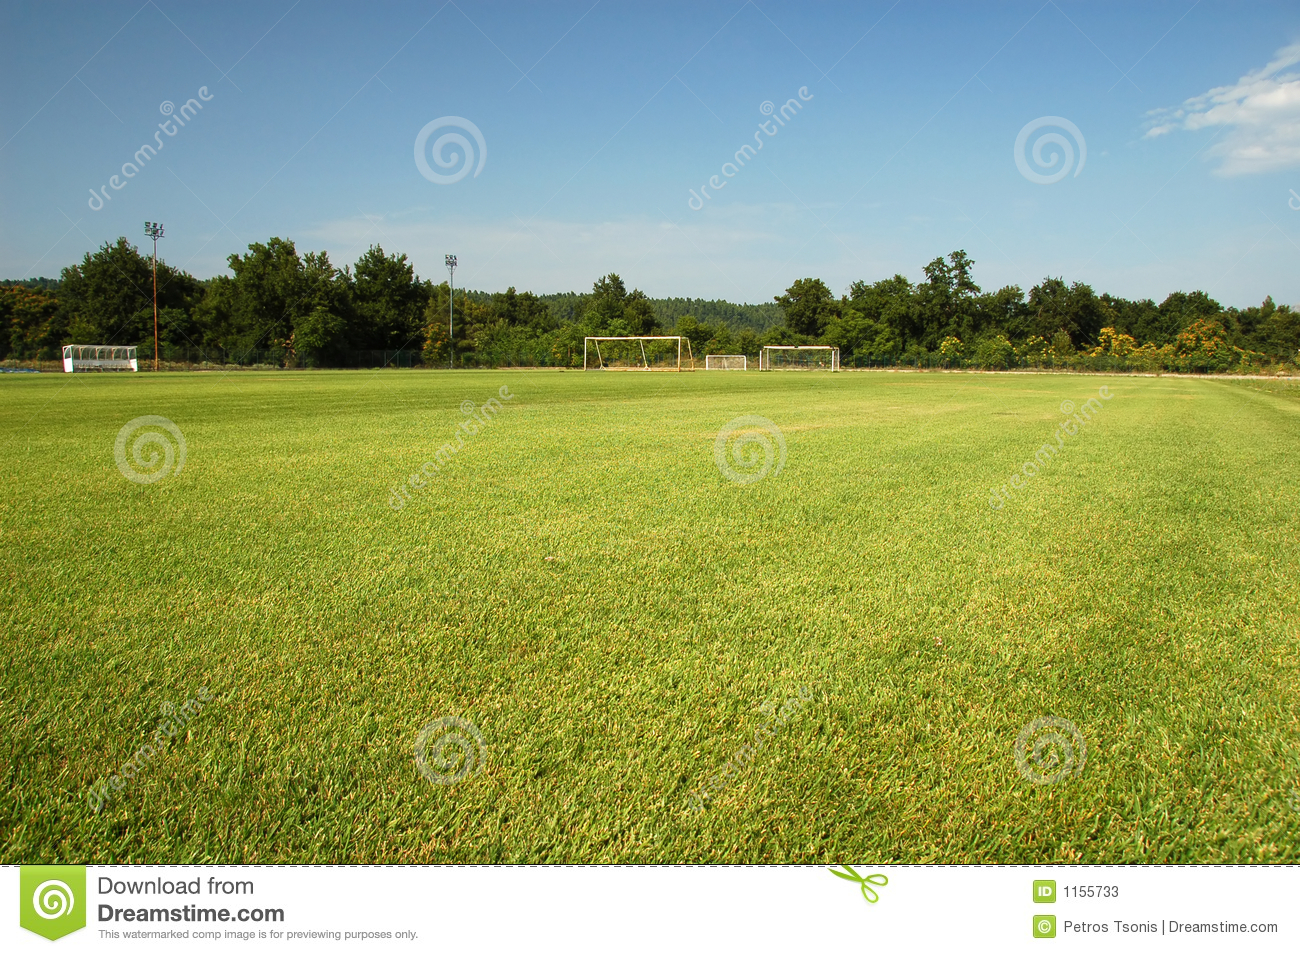 soccer training grounds stock photos image 1155733